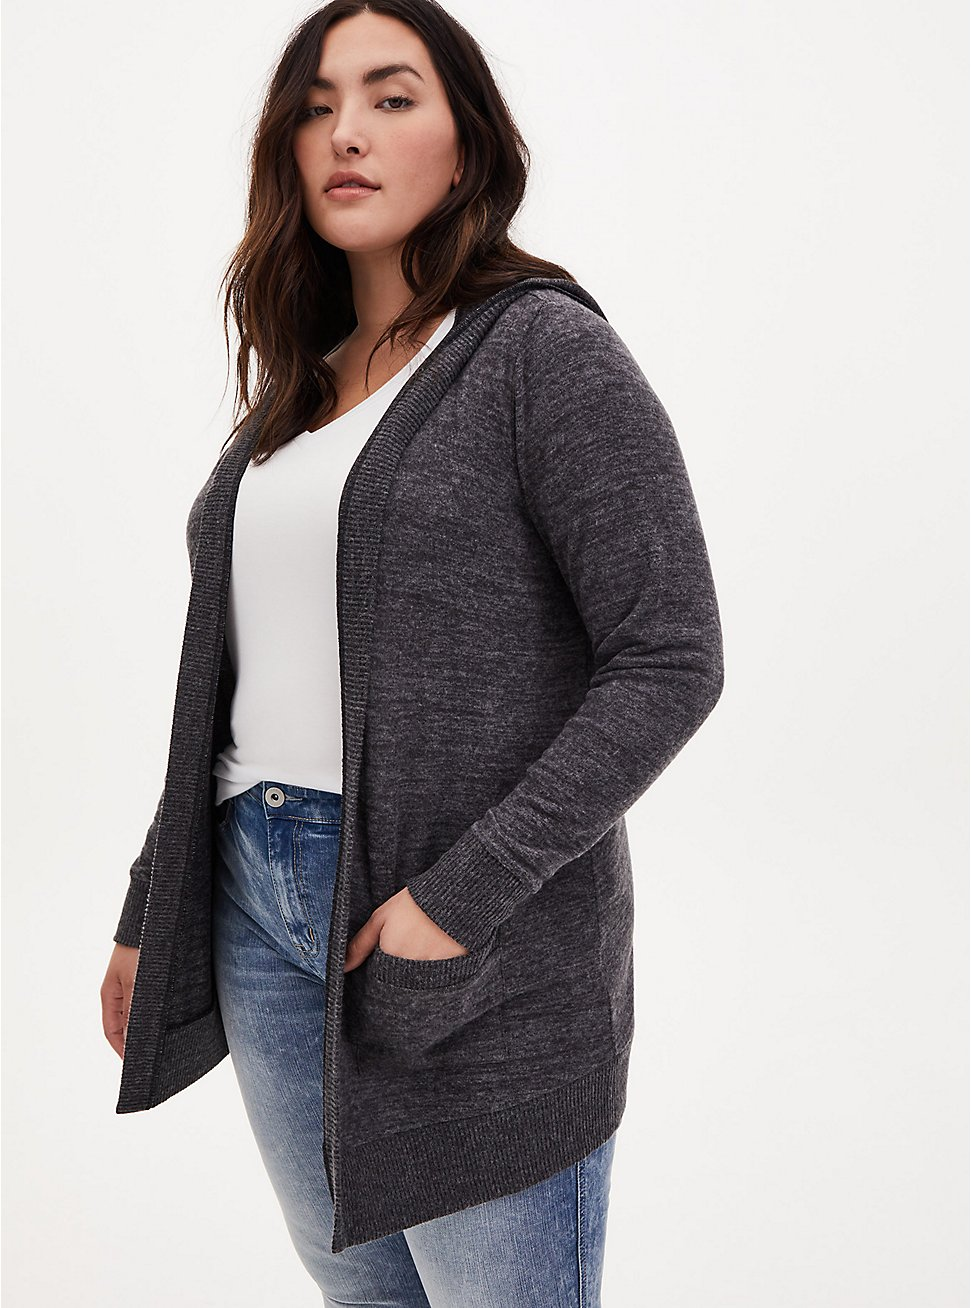 Super Soft Plush Charcoal Grey Open Front Hooded Cardigan, CHARCOAL  GREY, hi-res